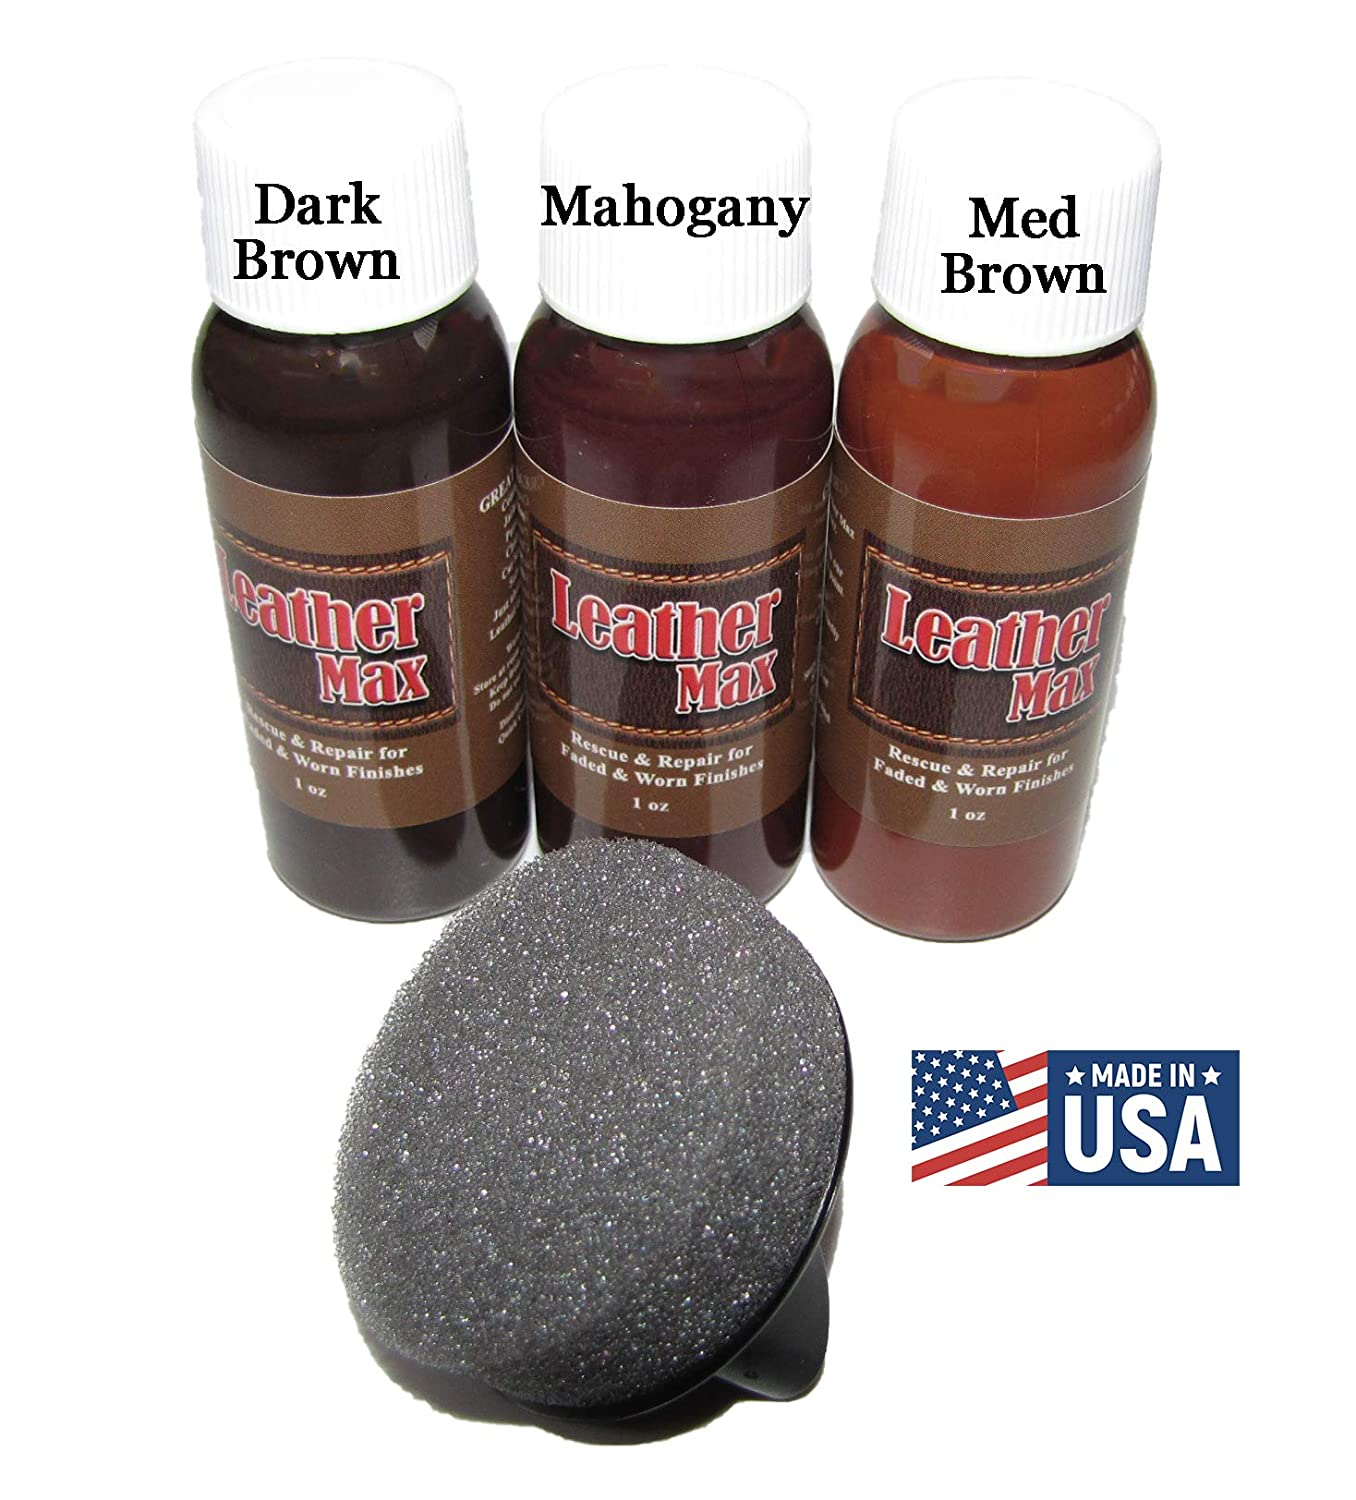 Leather Max Quick Blend Refinish and Repair Kit, Restore, Recolor & Repair / 3 Color Shades to Blend with/Leather Vinyl Bonded and More (Dark Browns)